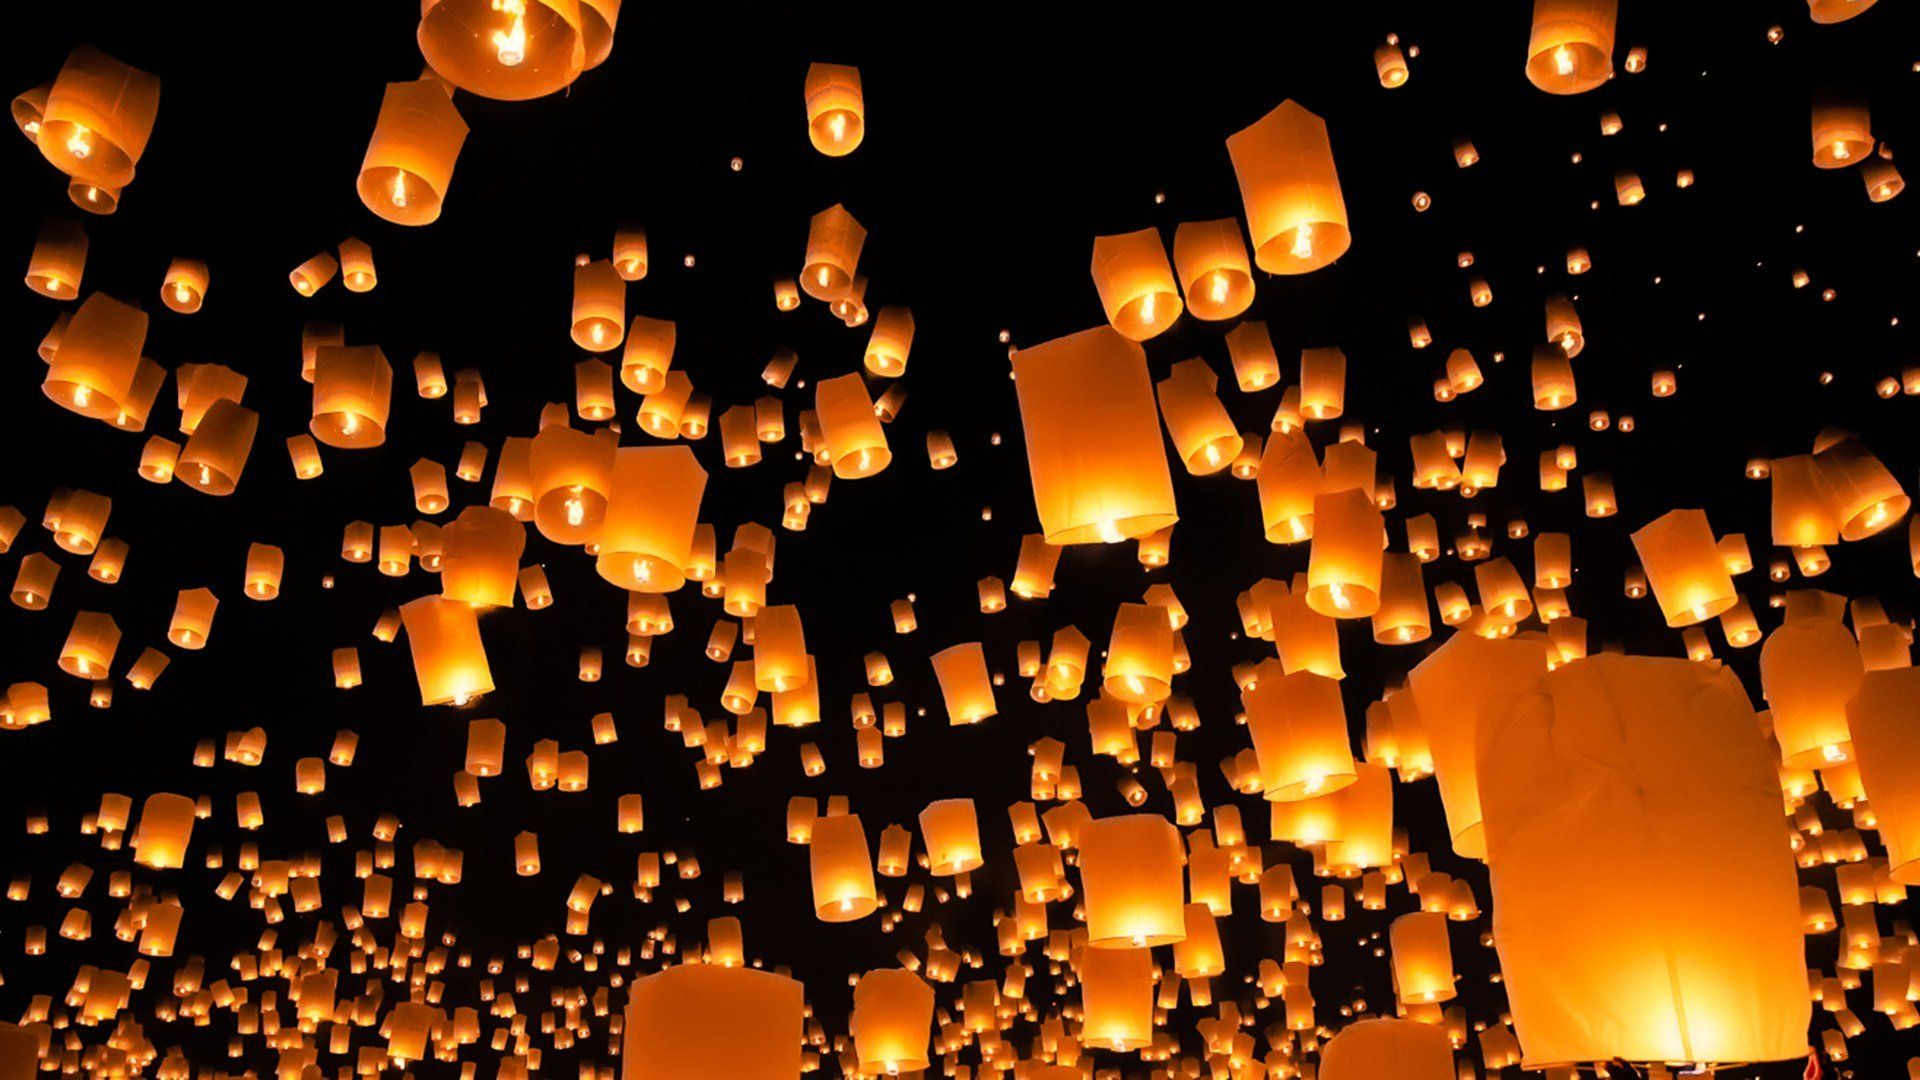 Night Light Ballon Photography Night Light Ballon Photography Is An Hd Desktop Wallpaper Posted In Our Free Image Collection Of Awesome Wallpapers